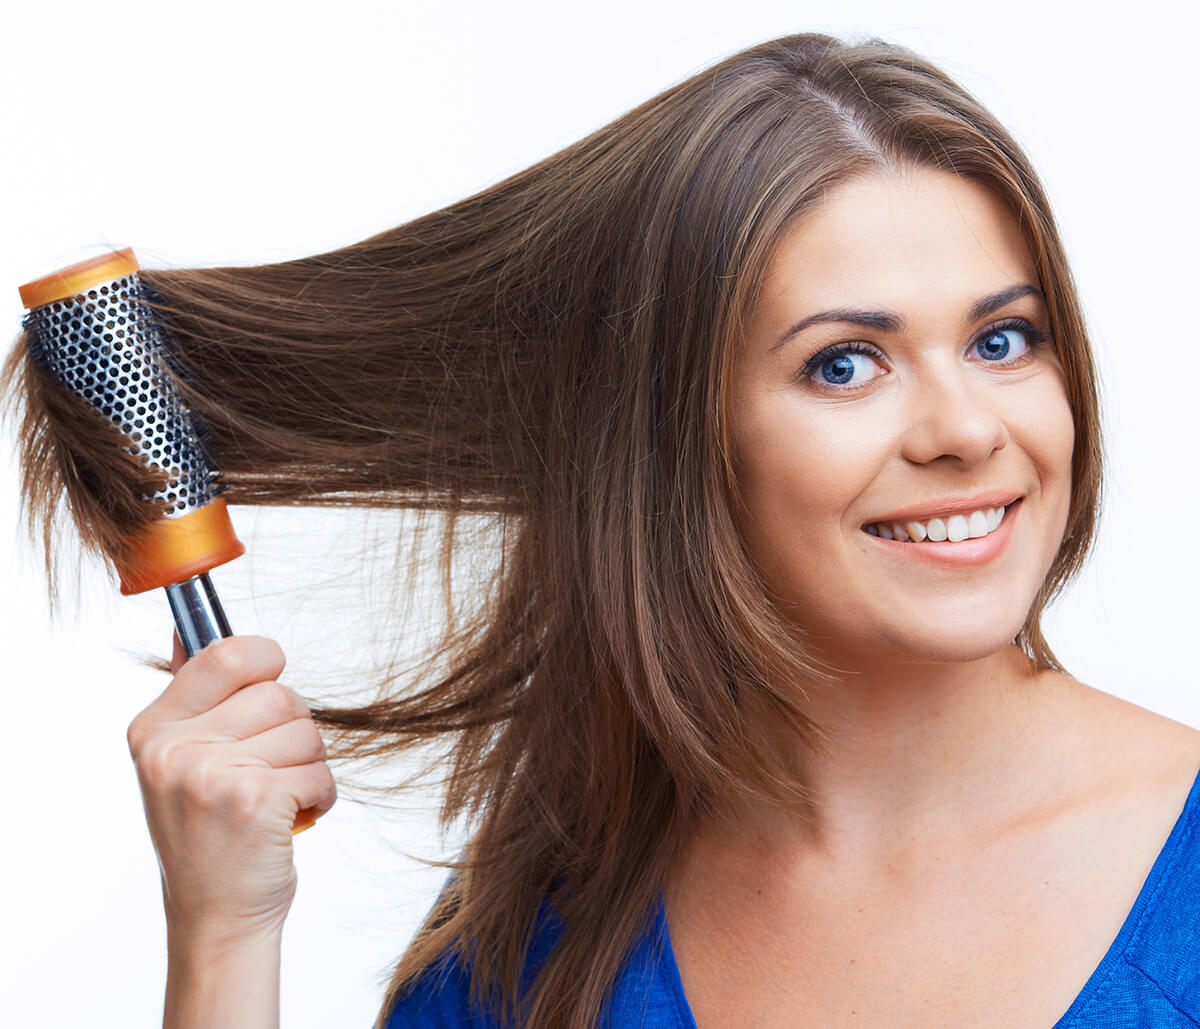 Dr. Burgess Offers Early and Effective Treatment to Promote Hair Growth for Patients in Washington, DC Area